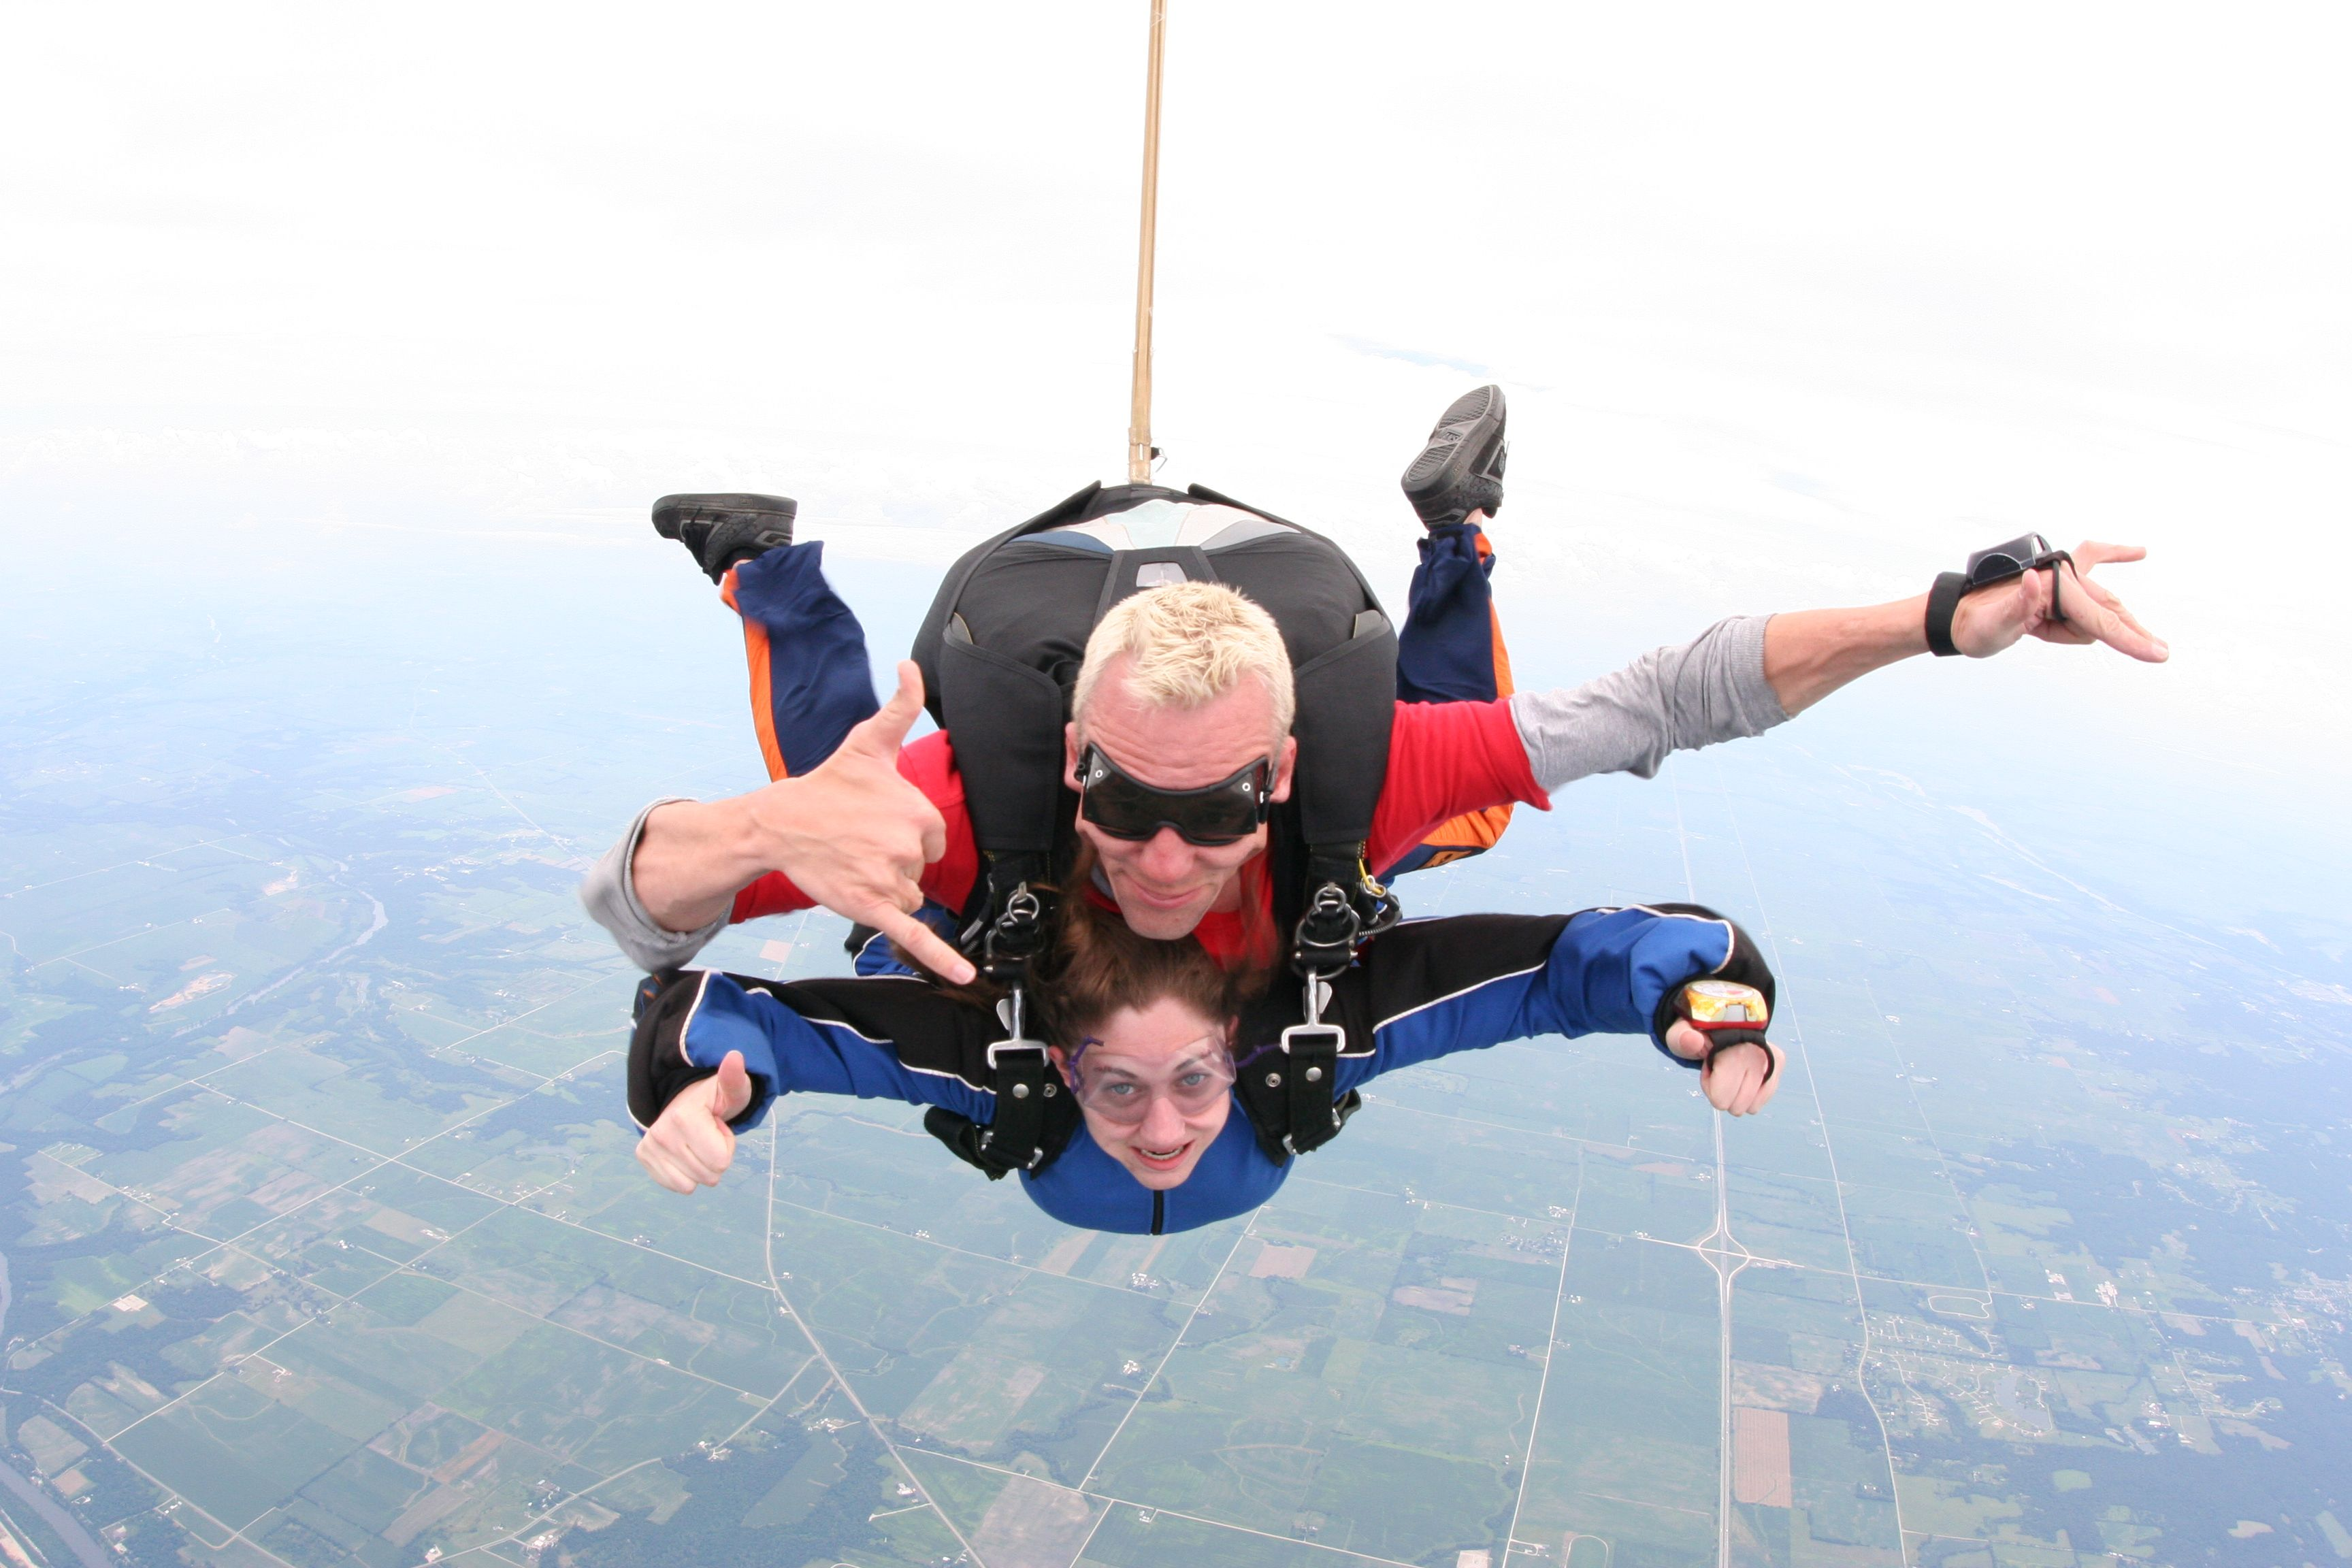 Skydiving! Love remembering the fun my family sees in this...